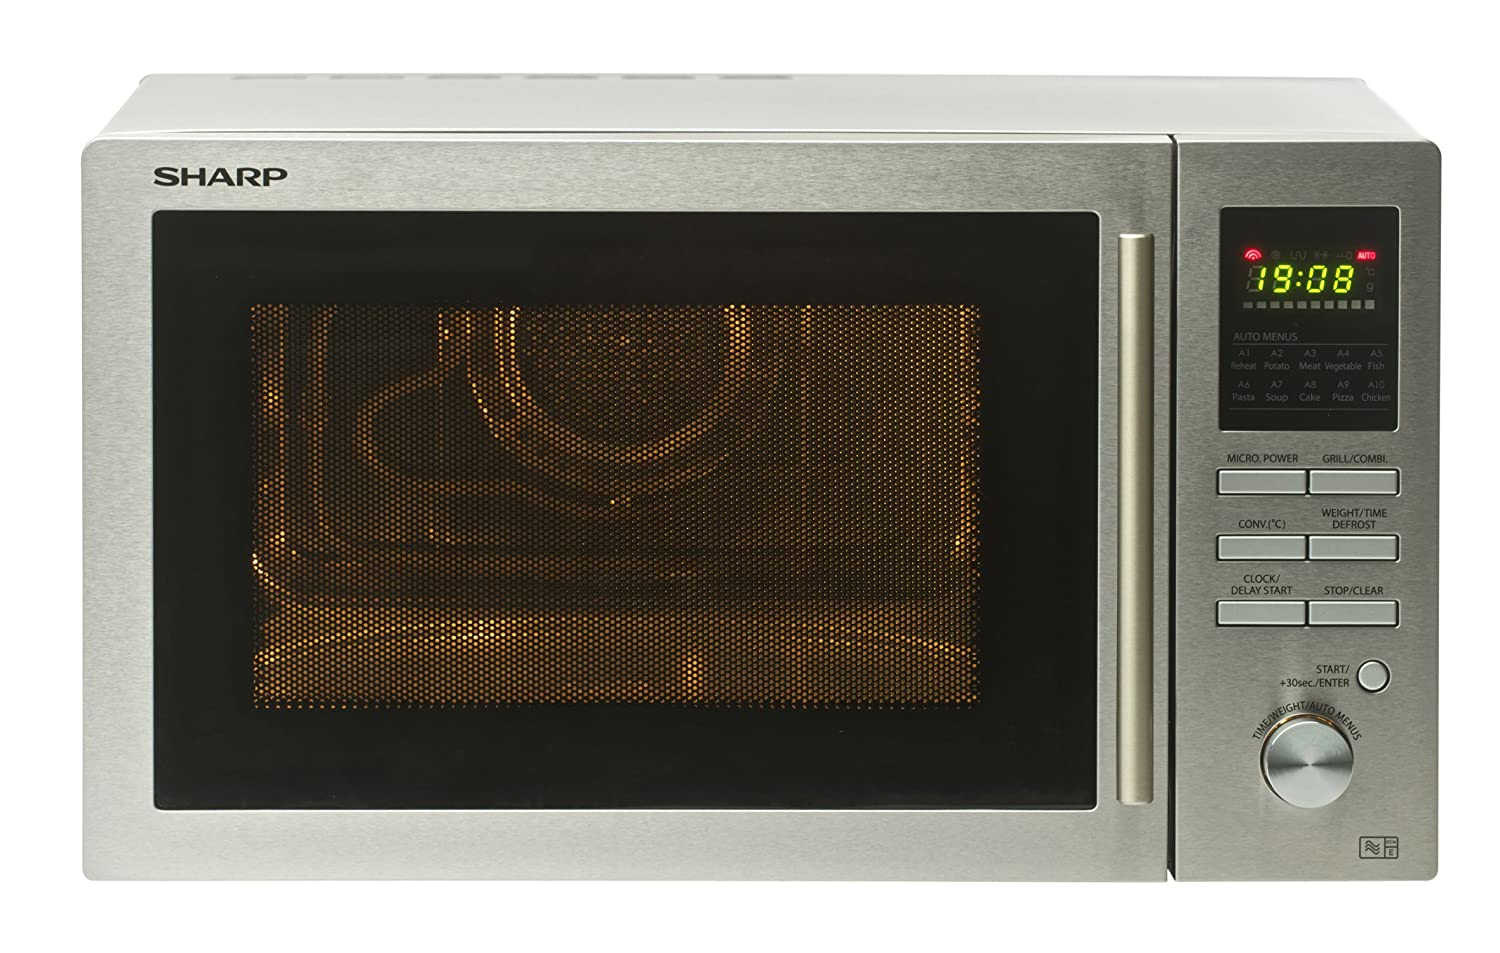 SHARP R82STMA Combi Microwave Oven with 1 Year Warranty, 25 Litre, 900 Watt, Sil - AUD 593.99 ...